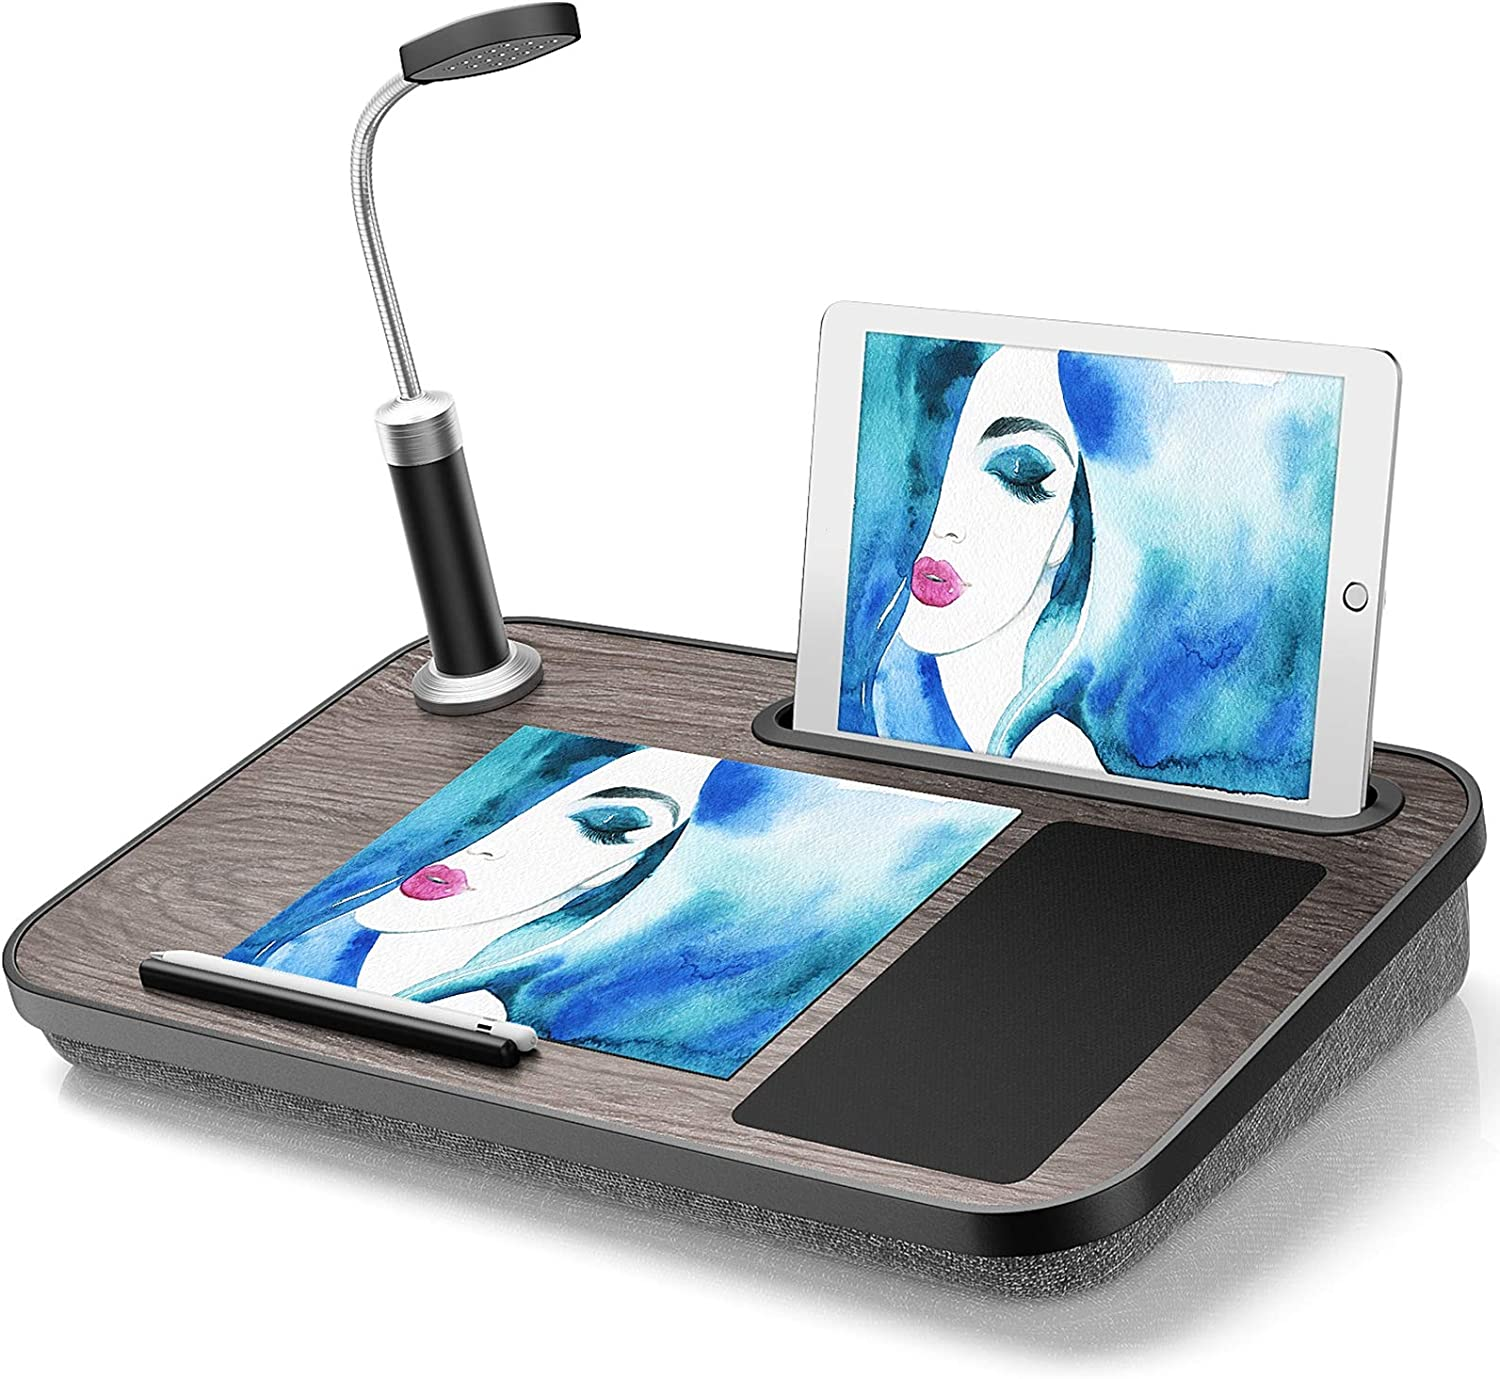 LORYERGO Lap Desk - Laptop Desk with Built in LED Light & Mouse Pad, Portable Laptop Stand Fits Laptops up to 17 Inches, Laptop Table with Phone & Tablet Holder for Couch, Bed